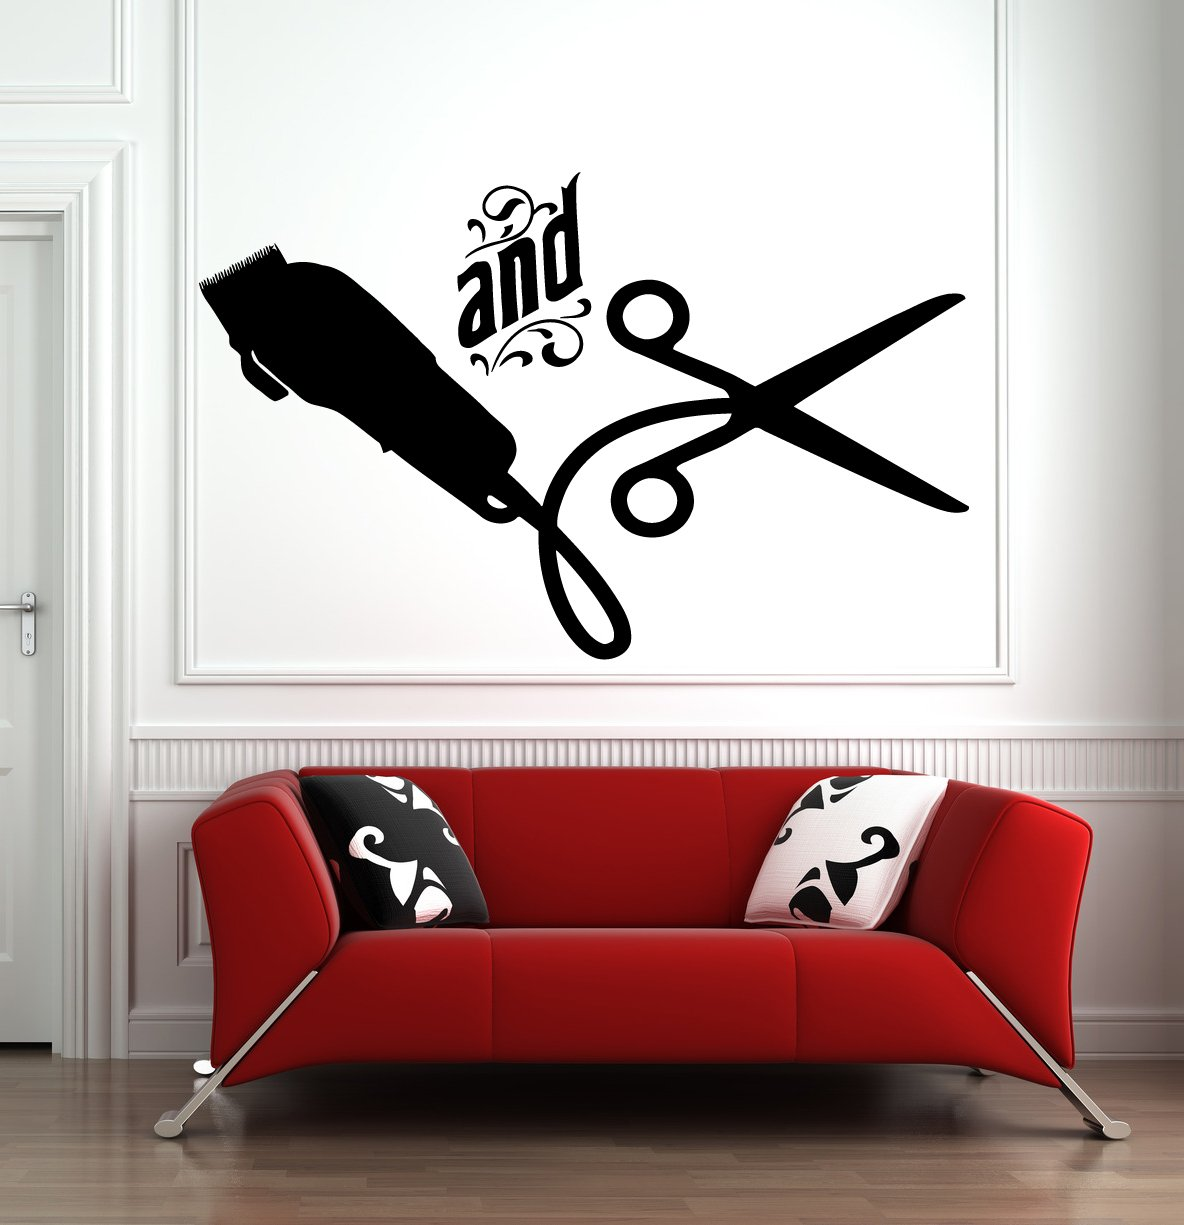 Hair Salon Wall Window Decal Sticker Hair Stylist Hair Tools Scissors Barber Shop Beauty Salon Hs029 Baby